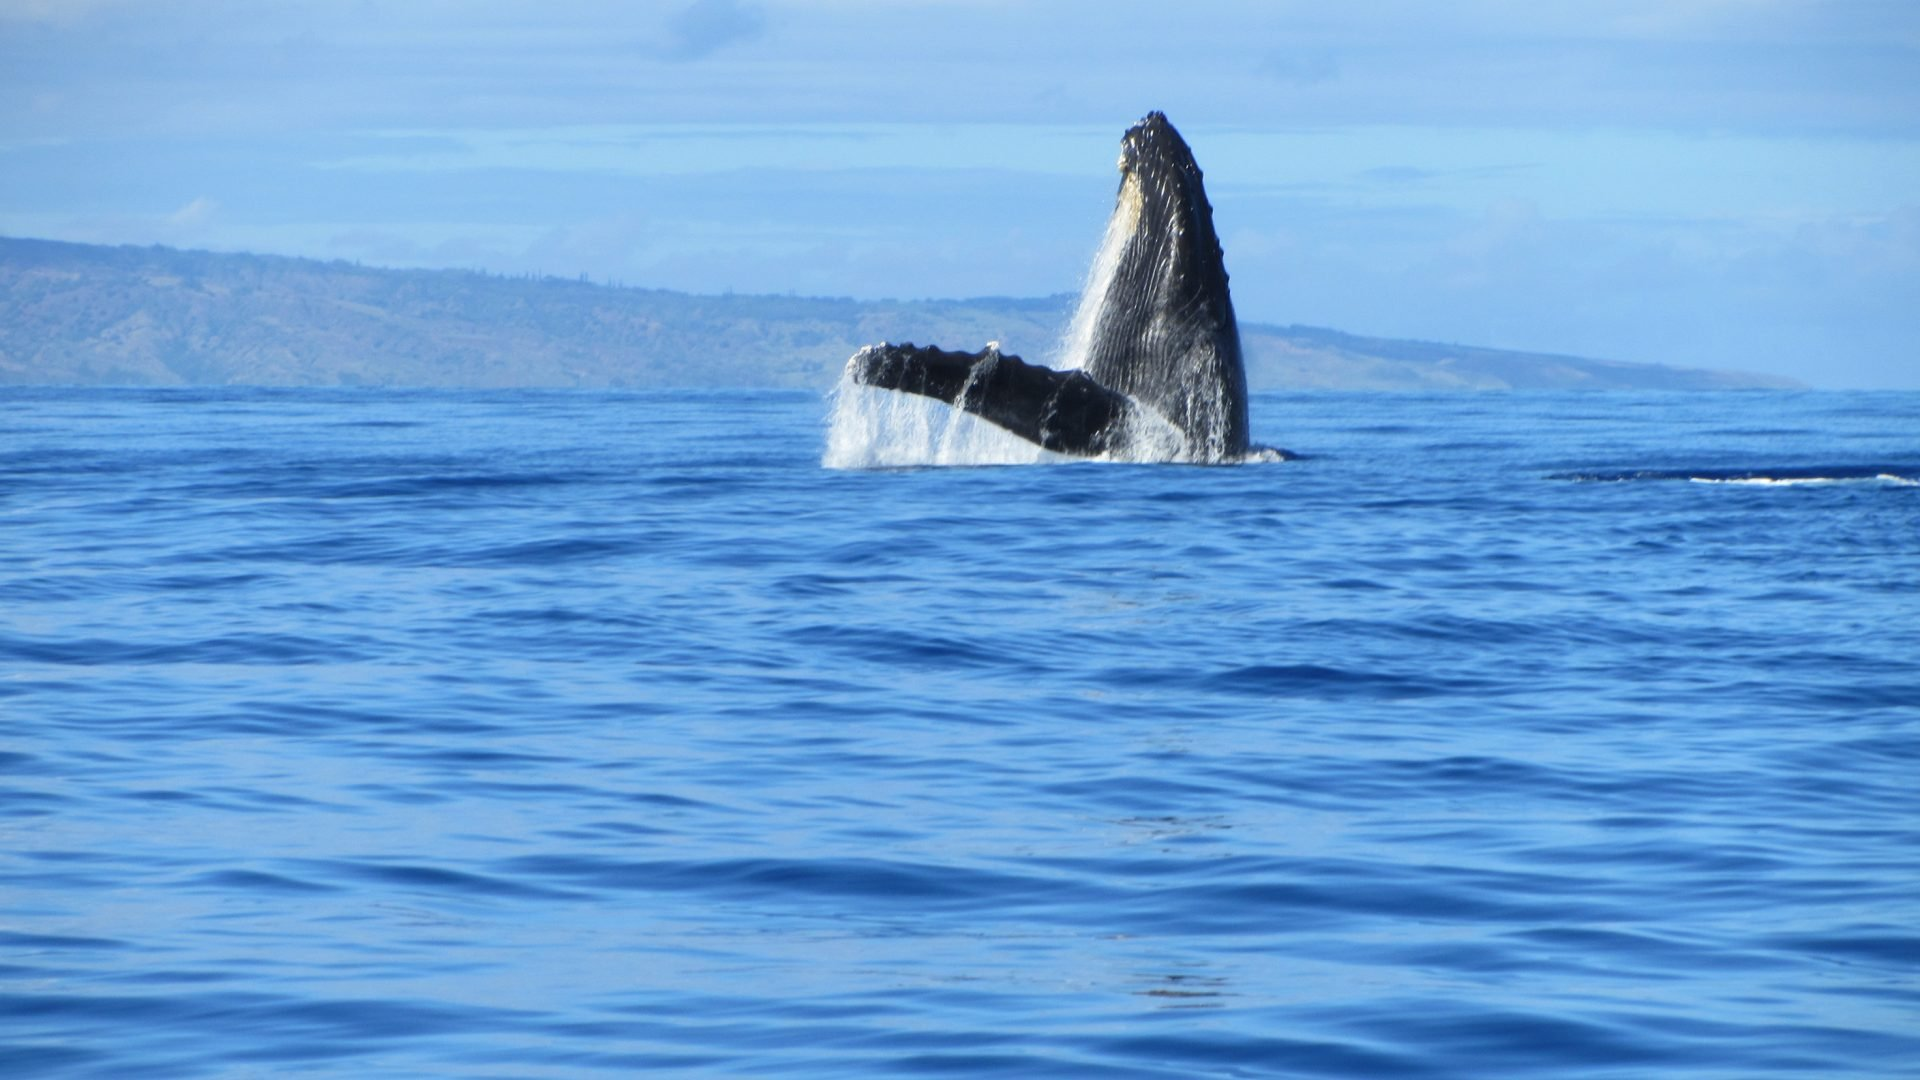 The holidays are here and the whales will begin to arrive in great numbers any day. If you are on Maui don't forget, Maui whale watching tours begin december 15th!